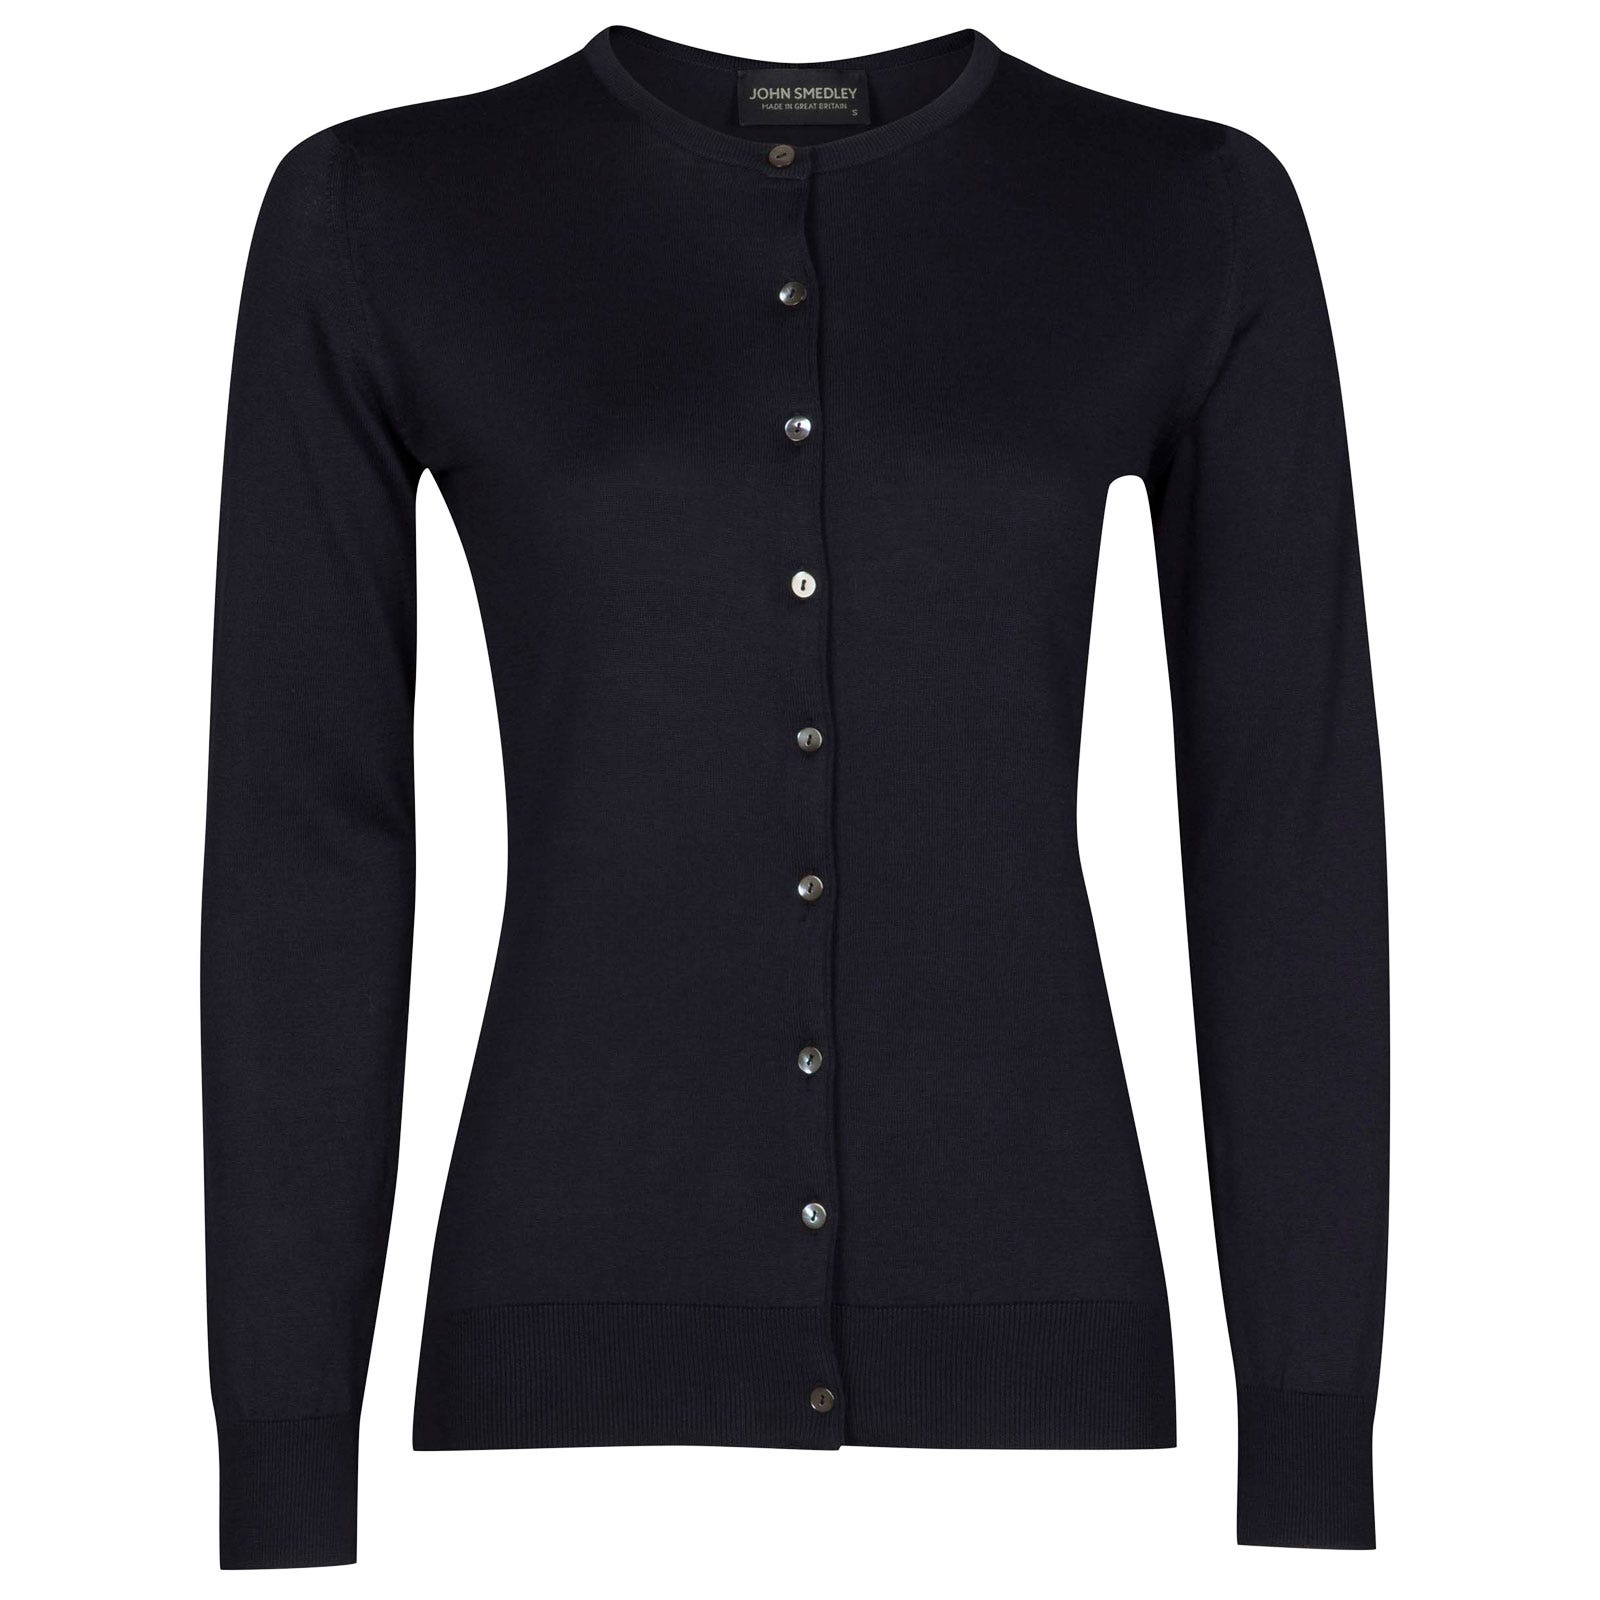 John Smedley Islington Sea Island Cotton Cardigan in Navy-S